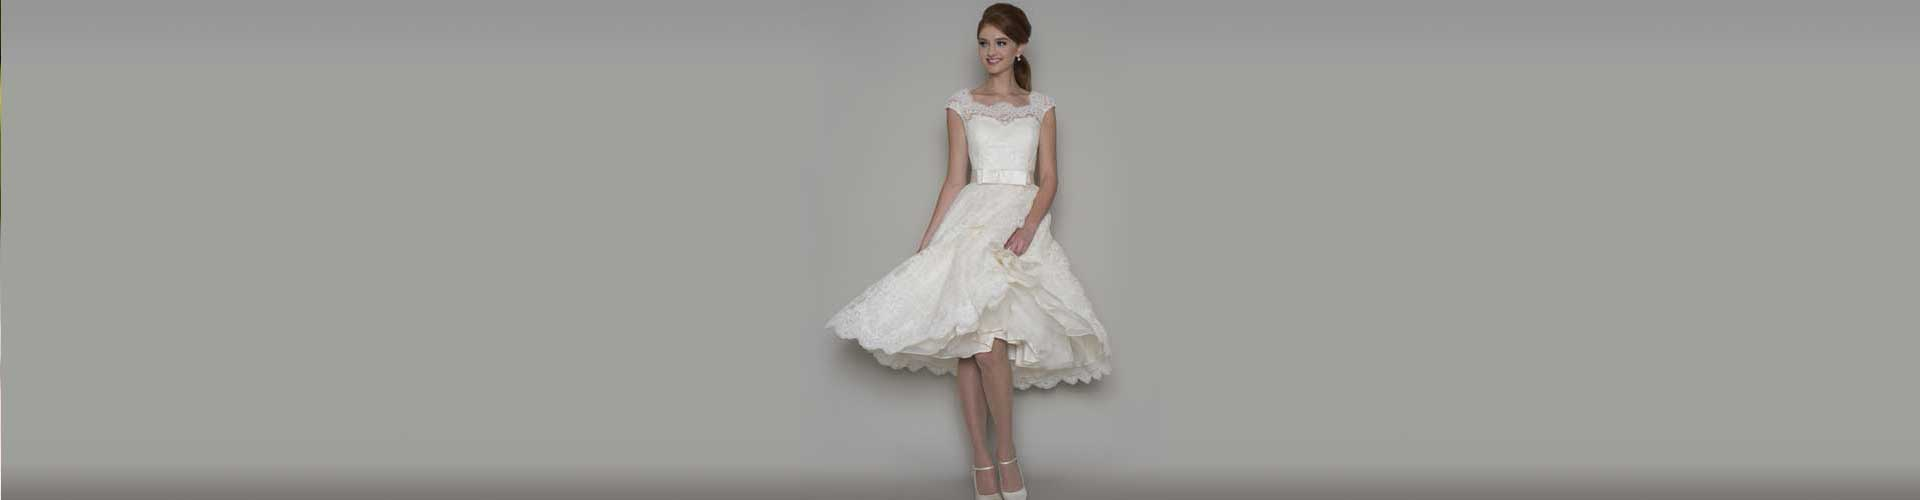 WEDDING DRESSES BY